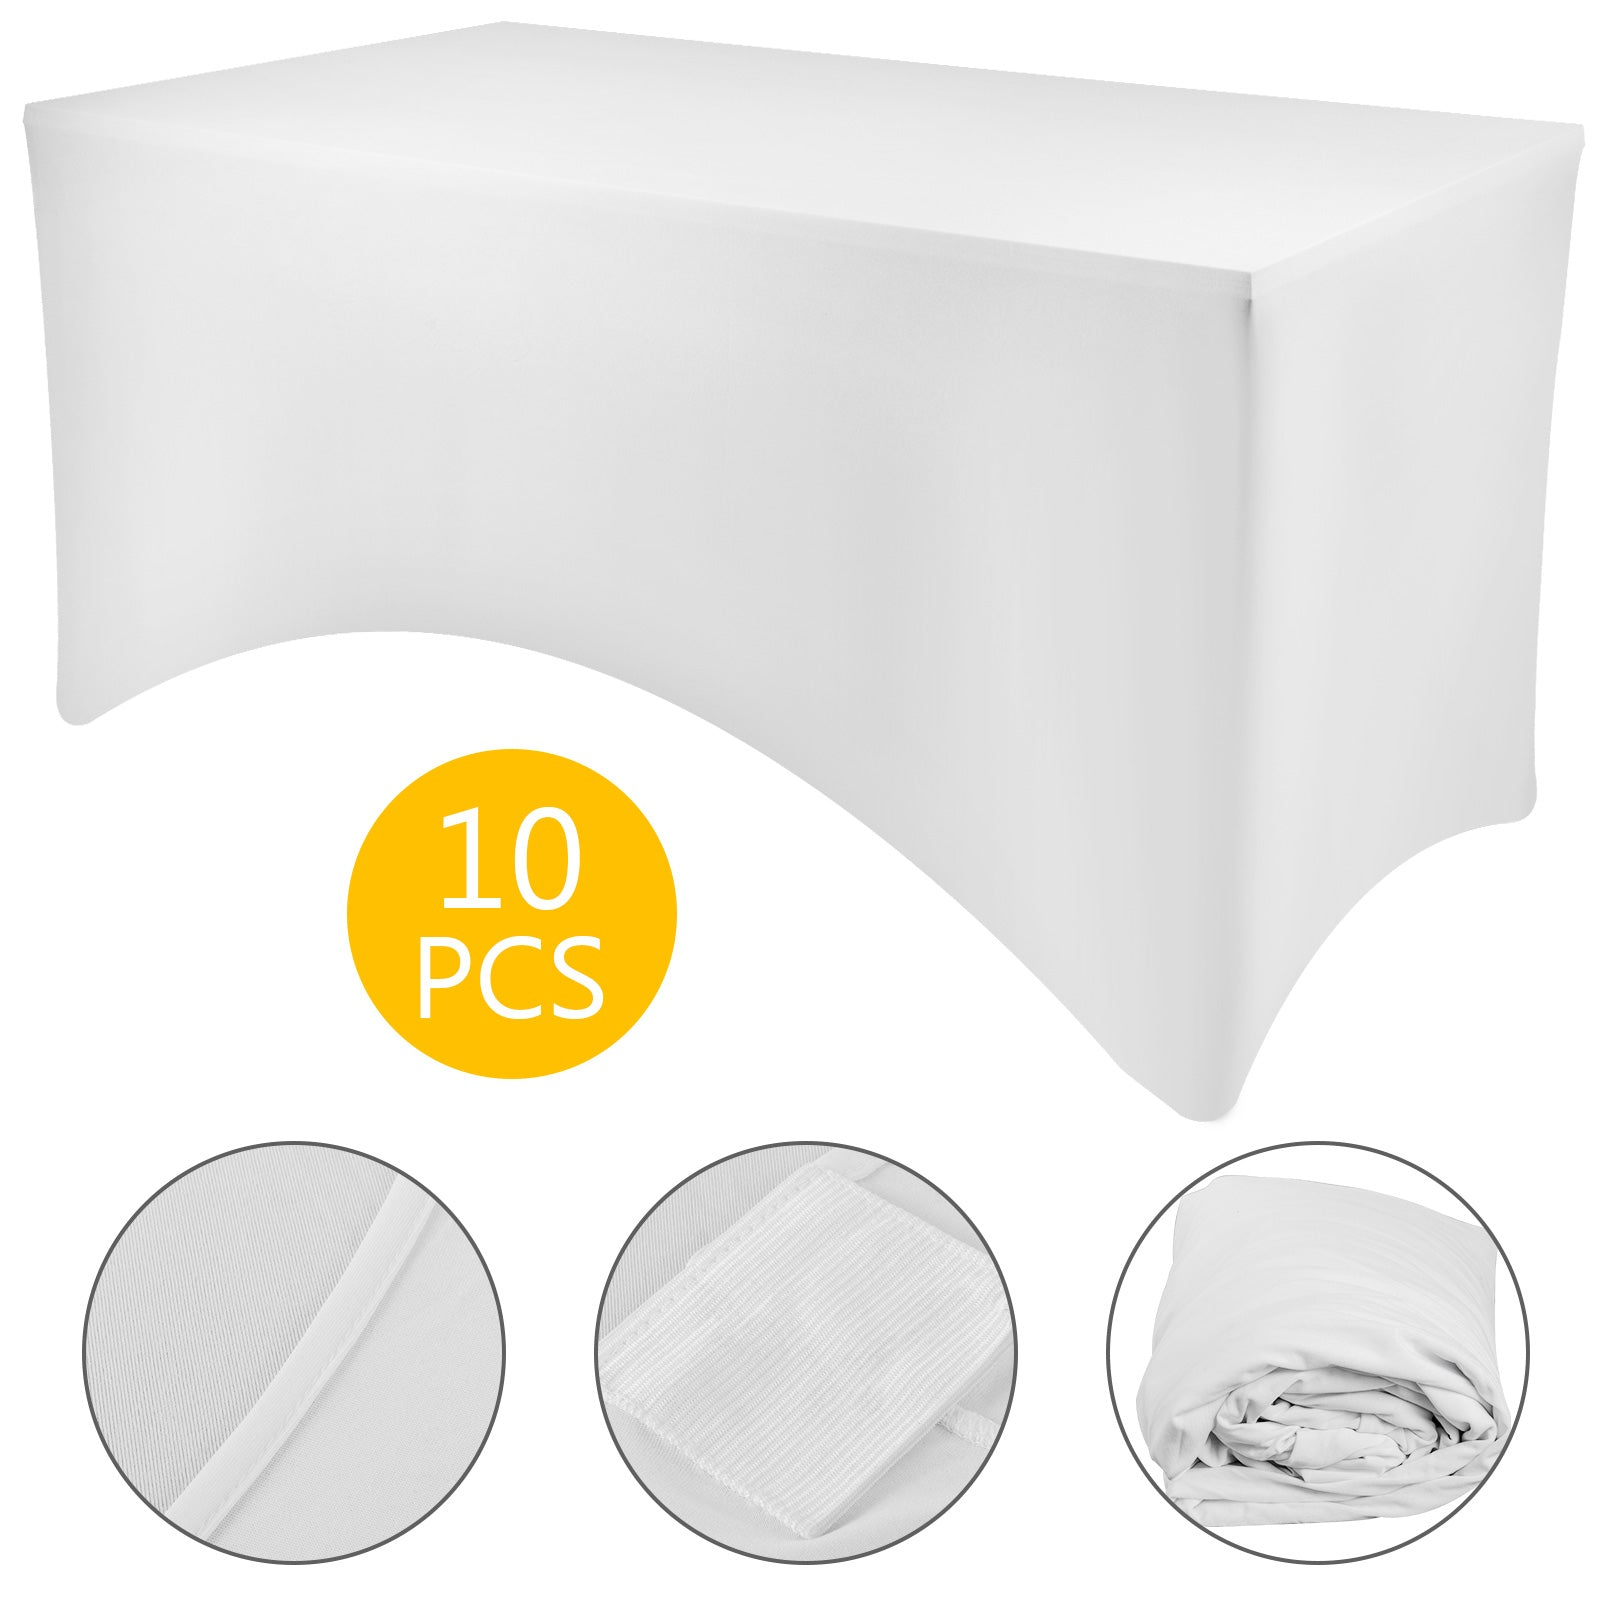 10pc 4ft Stretch Spandex Table Covers, Fitted Rectangular Tablecloths Wedding